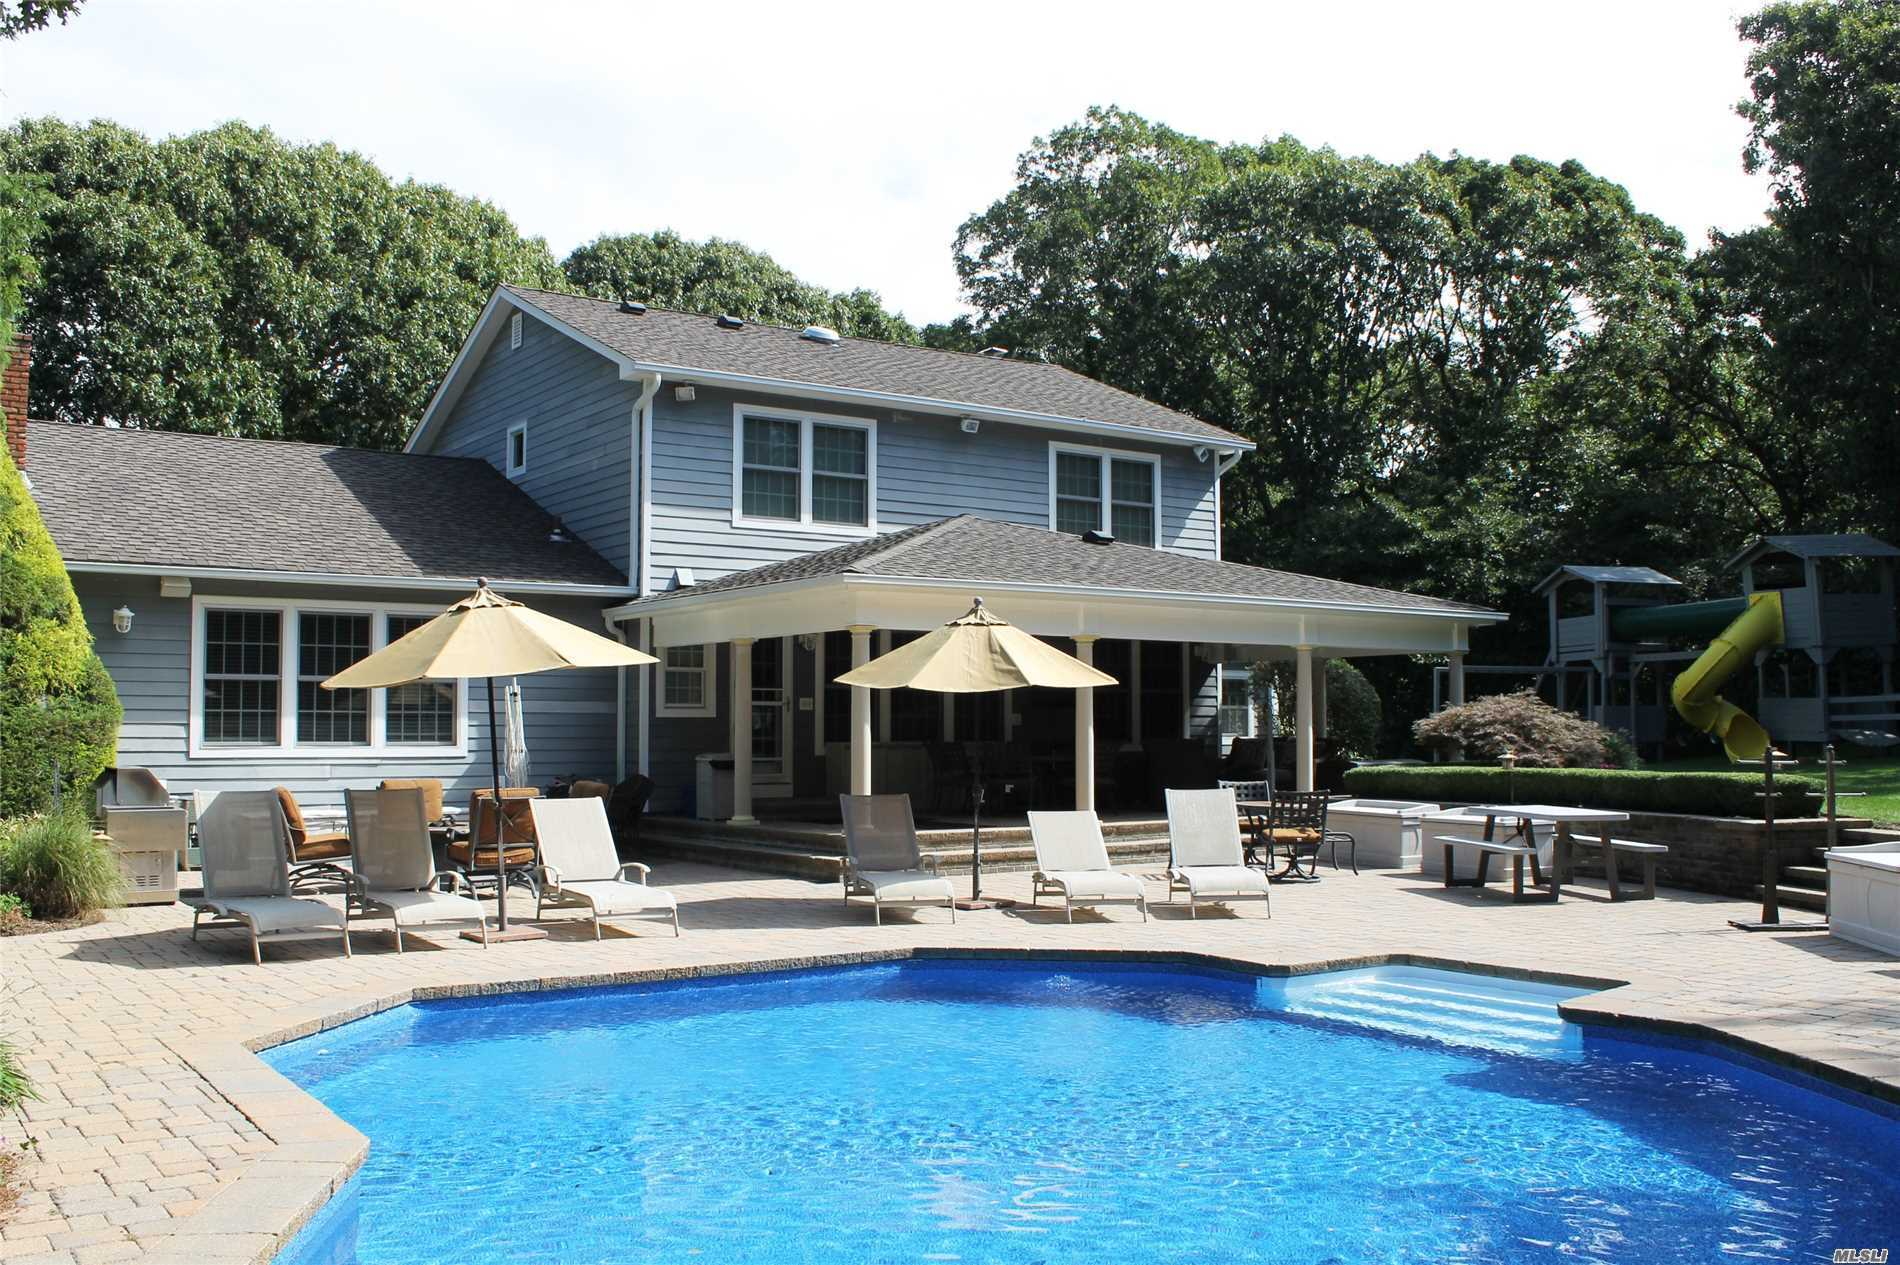 Photo of home for sale at 99 Squiretown Rd, Hampton Bays NY